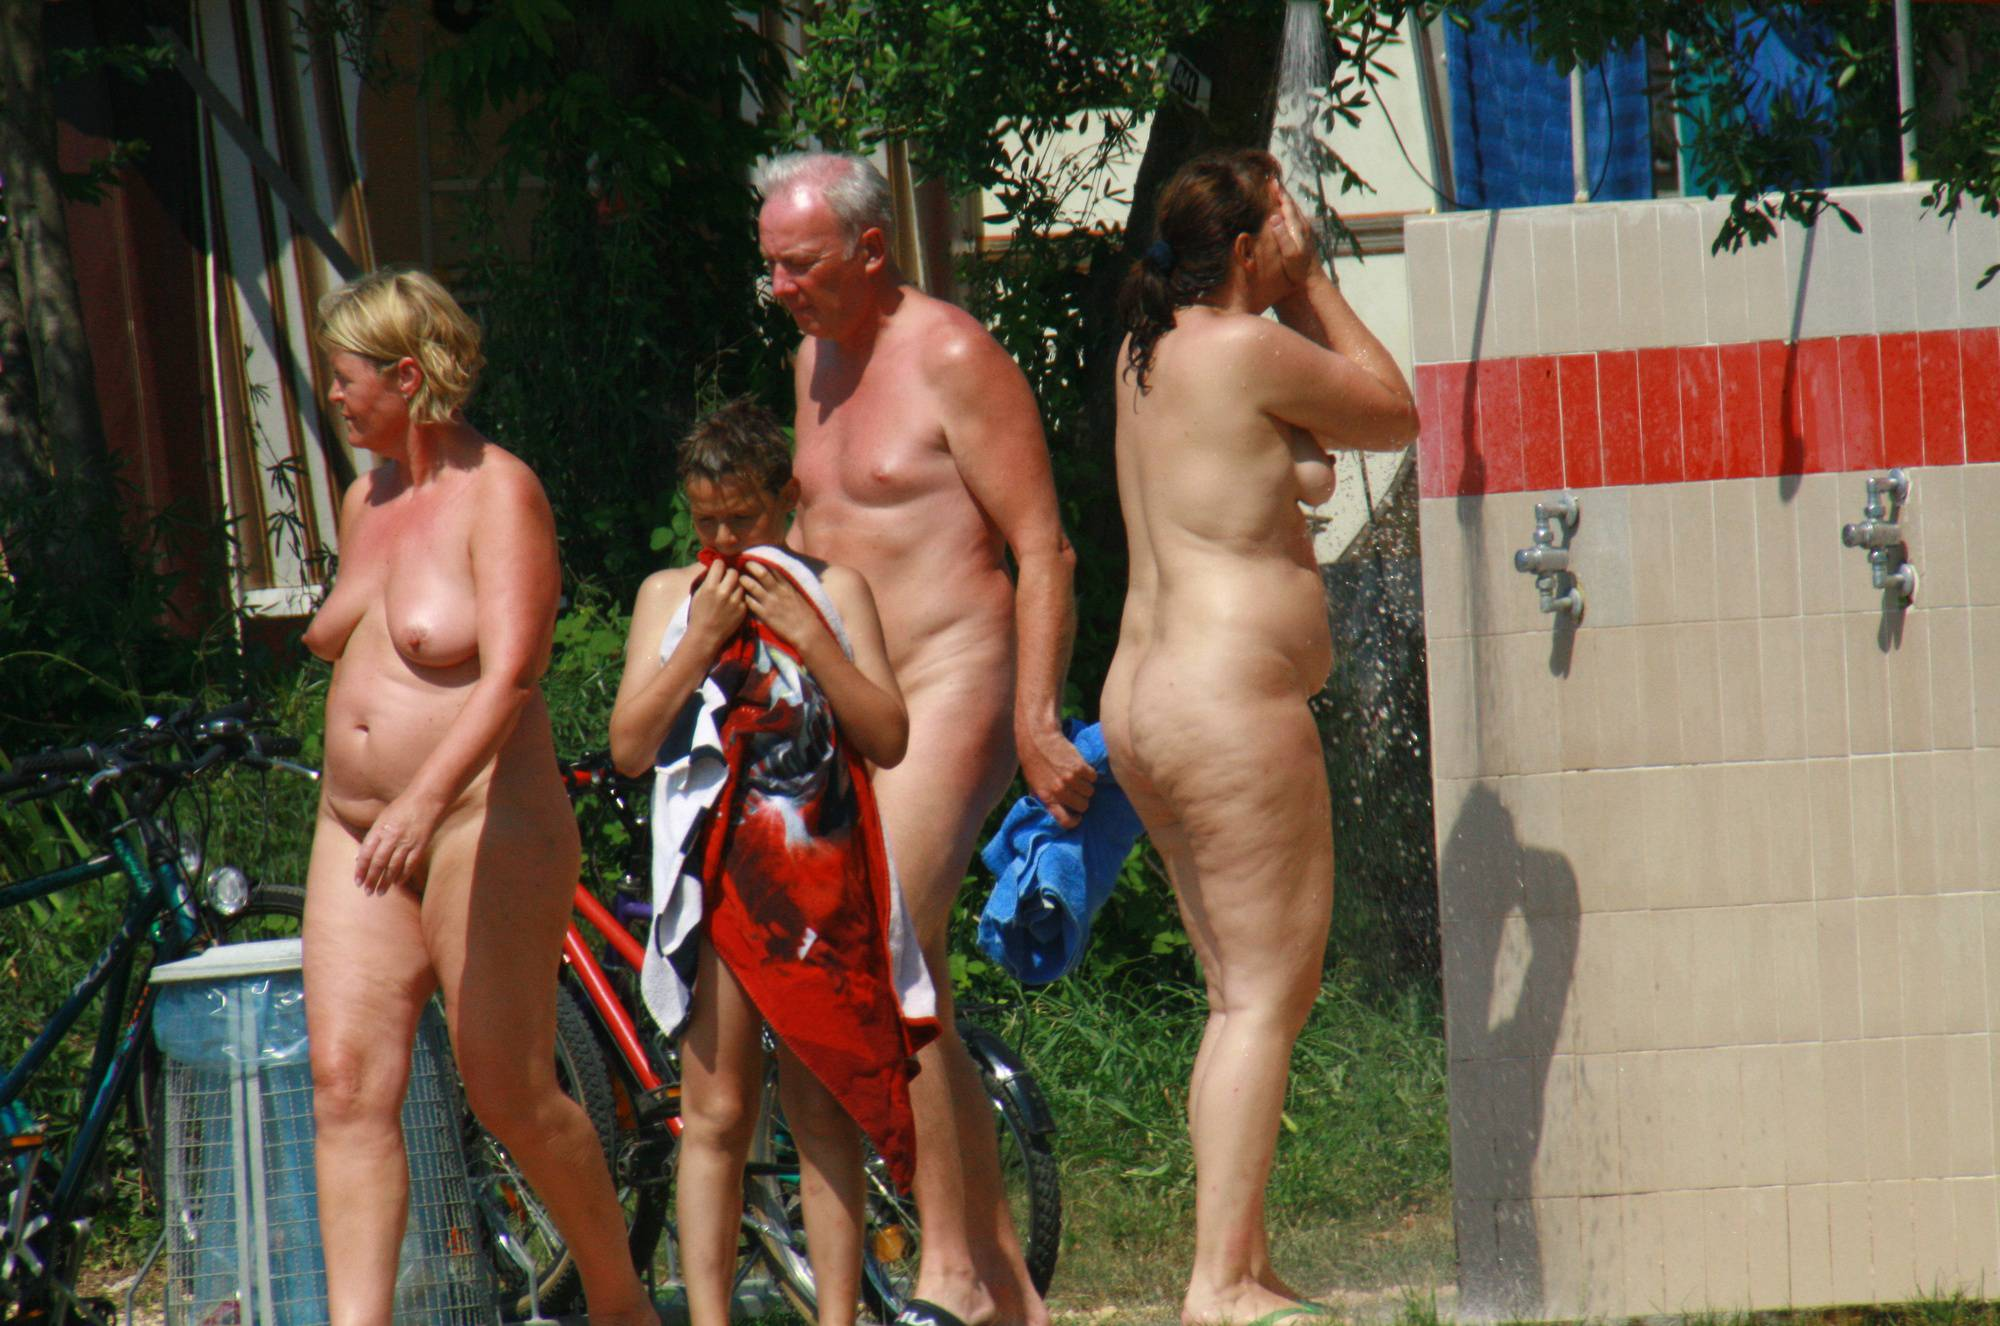 Pure Nudism-Son and Mother Beach Walk - 3